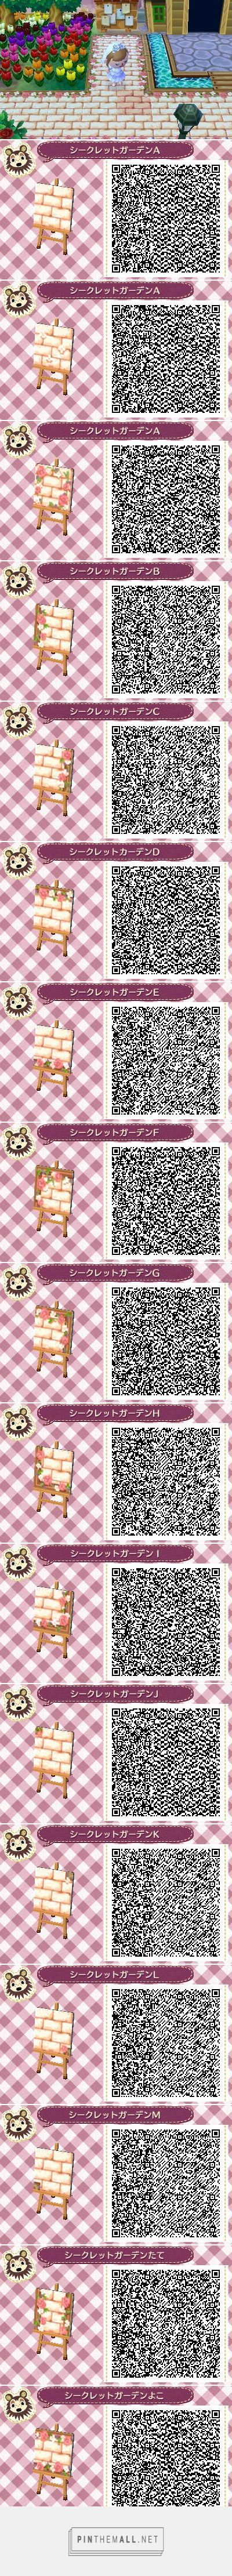 White Stone Path With Flower Border Motif Acnl Animal Crossing Qr